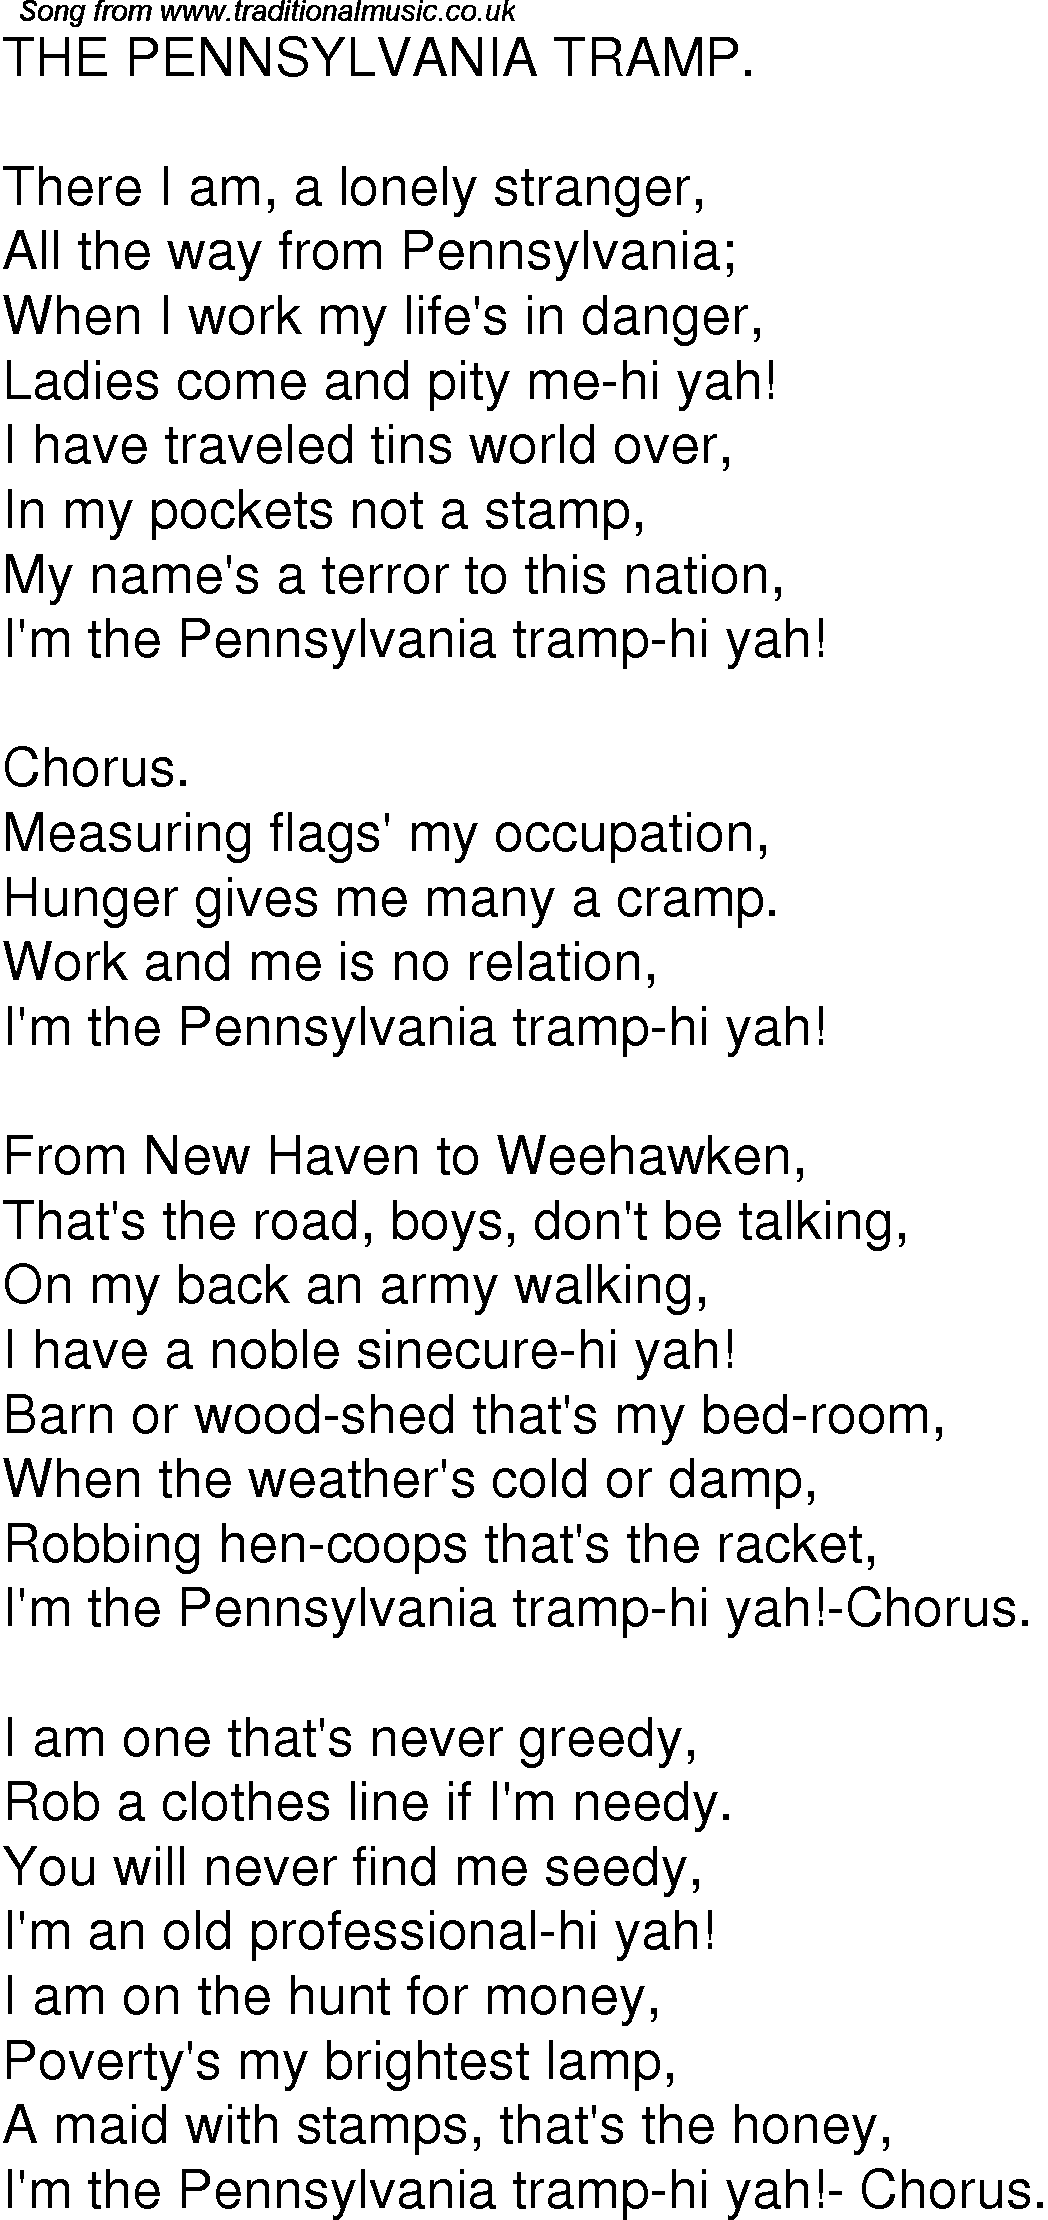 Old Time Song Lyrics For 04 The Pennsylvania Tramp